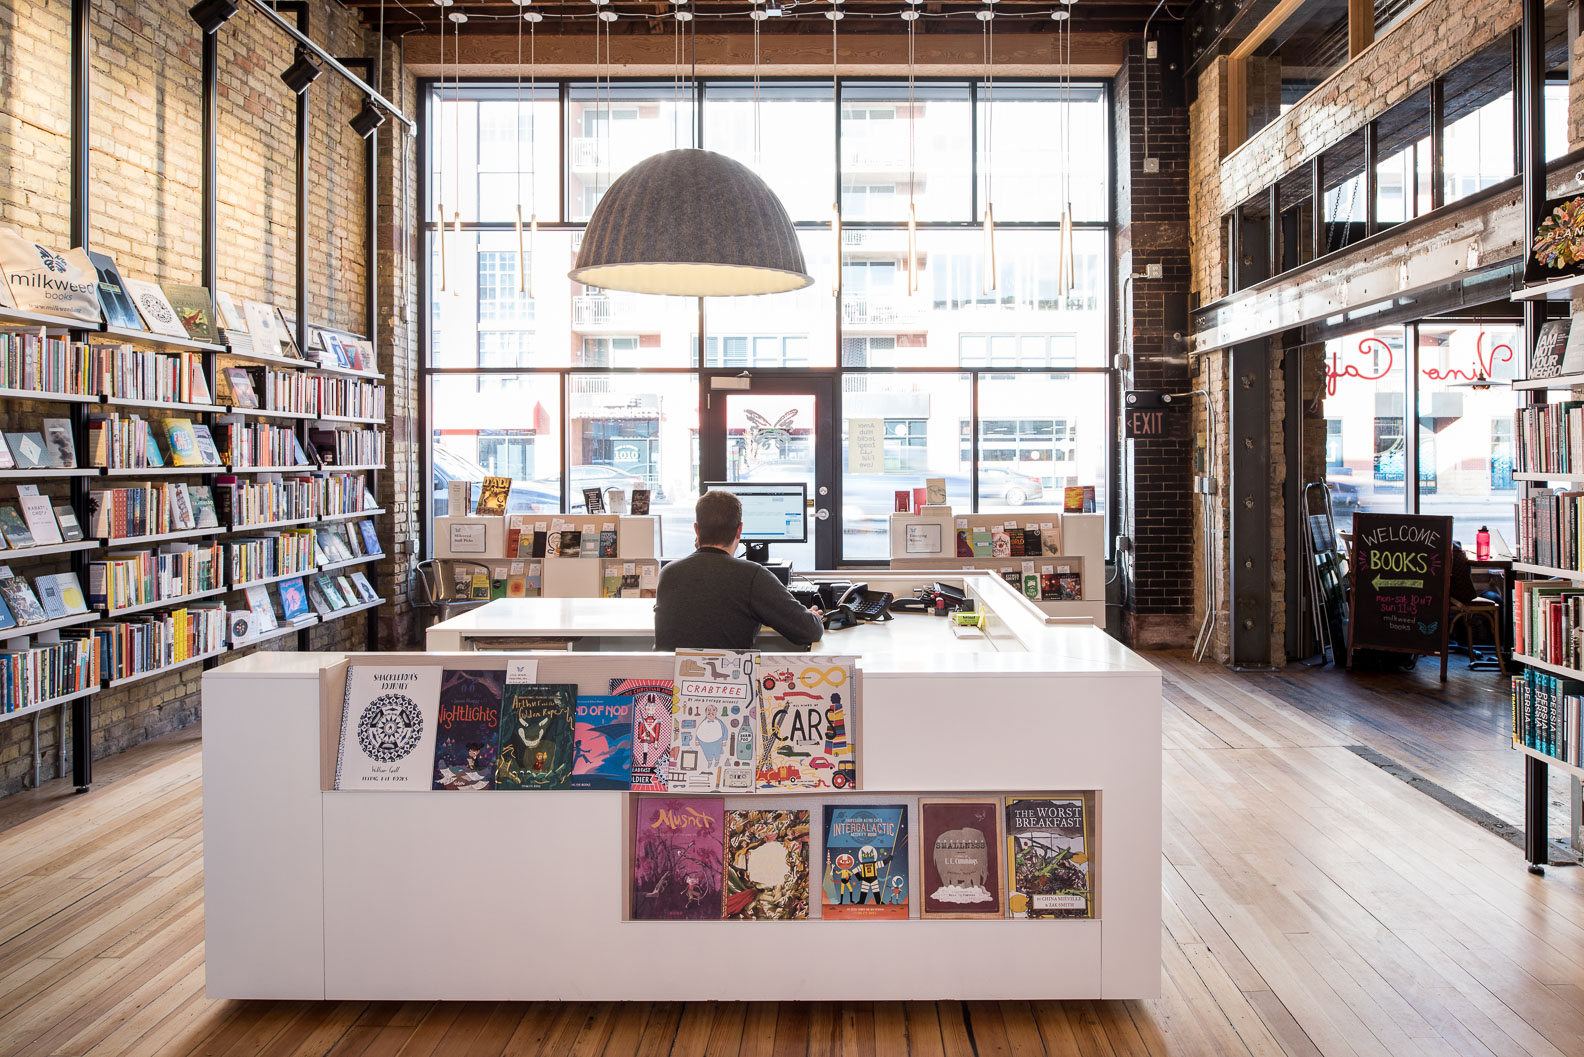 modern bookstore in historic building milkweed bookstore in minneapolis designed by christian dean architecture